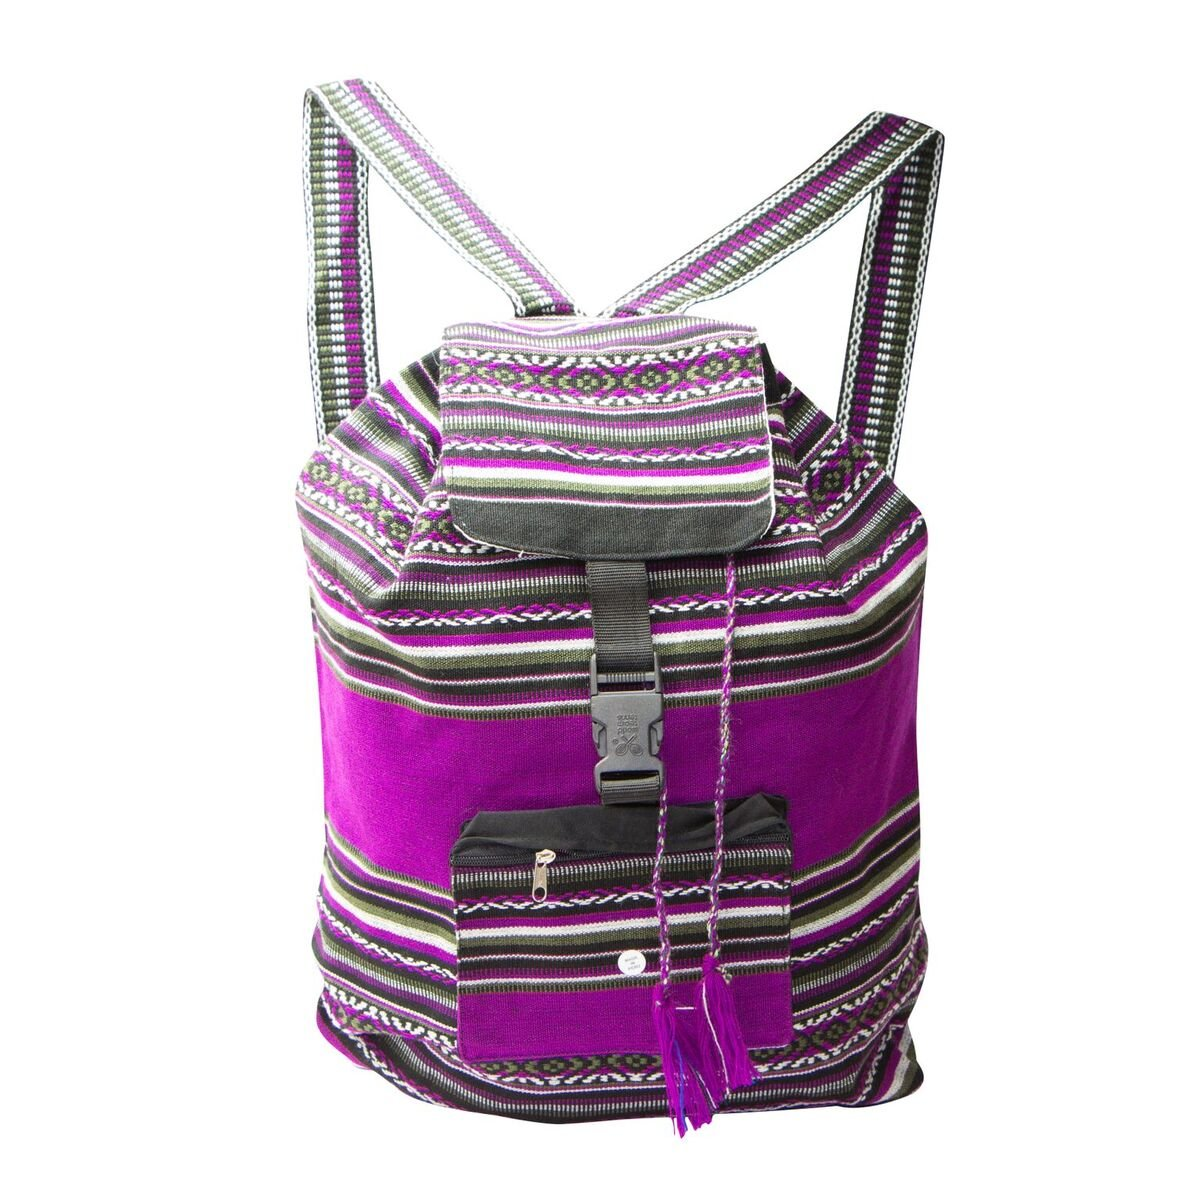 Handmade Lightweight, Water Resistant Washable Unisex Day Bag with Extra Storage Pockets for -Gym, Travel, Beach, Backpack, School, Hiking, Carry-on Luggage (Purple)